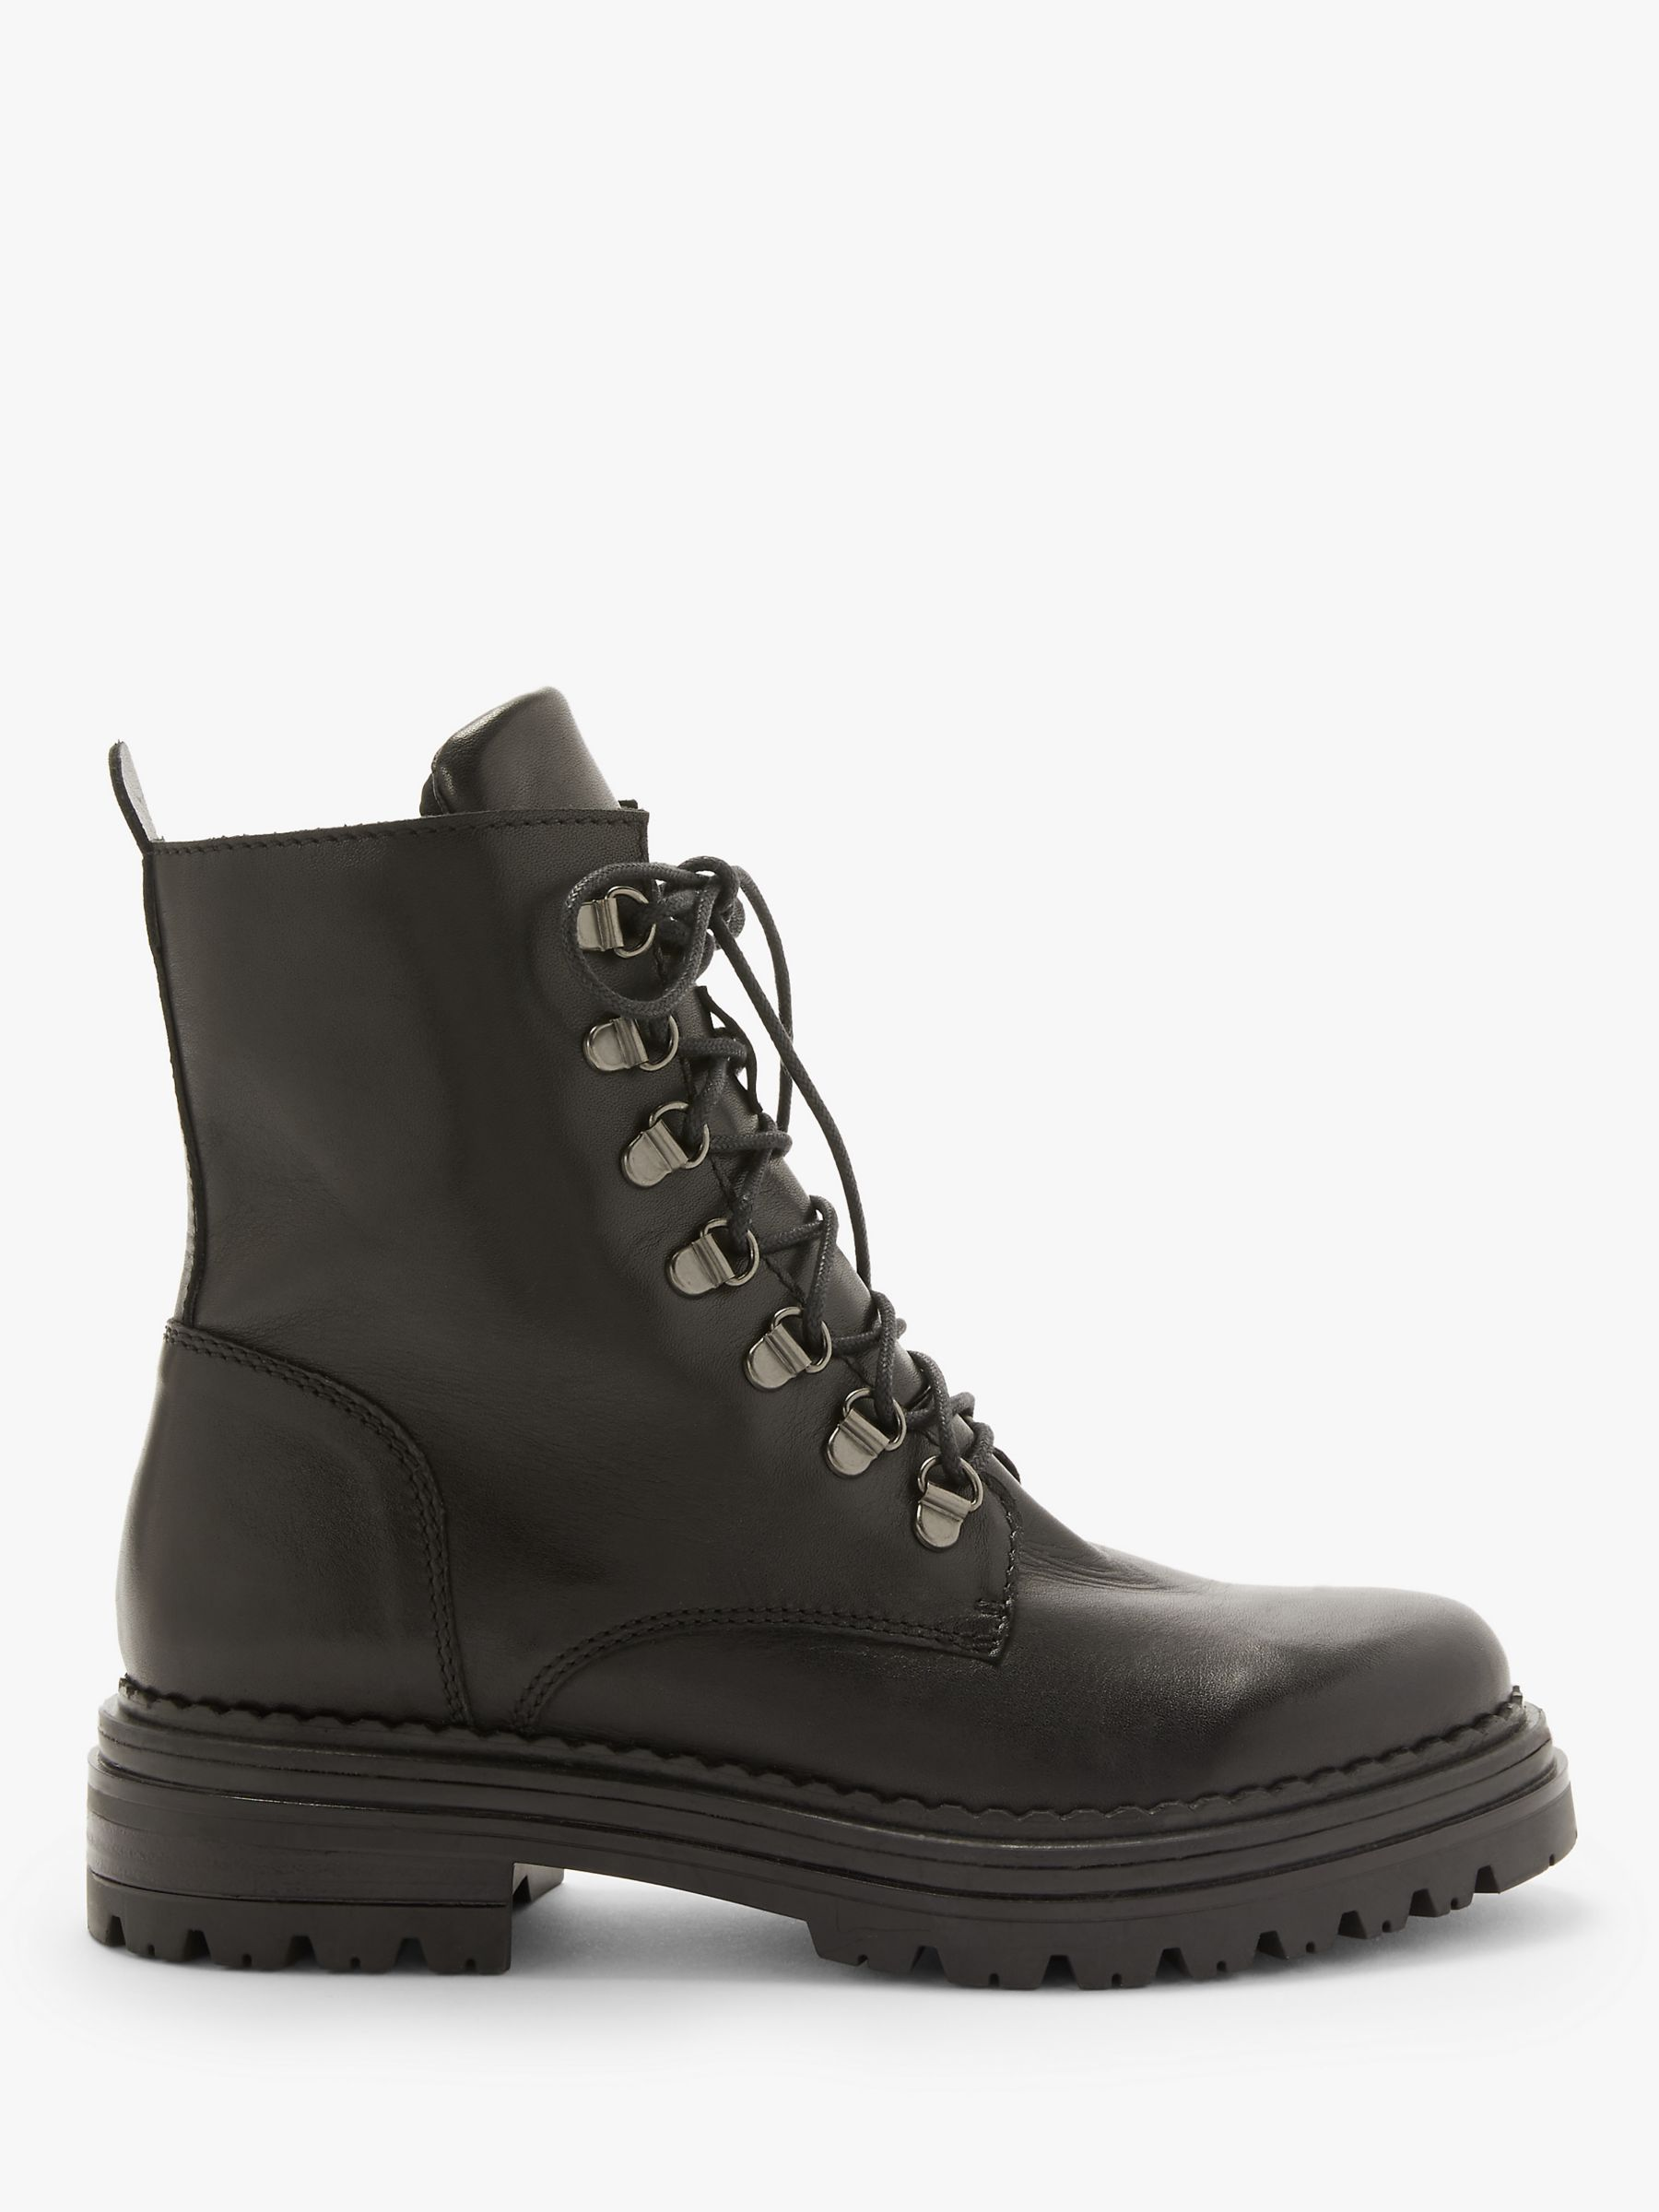 AND/OR Rudi Leather Lace Up Hiking Boots, Black